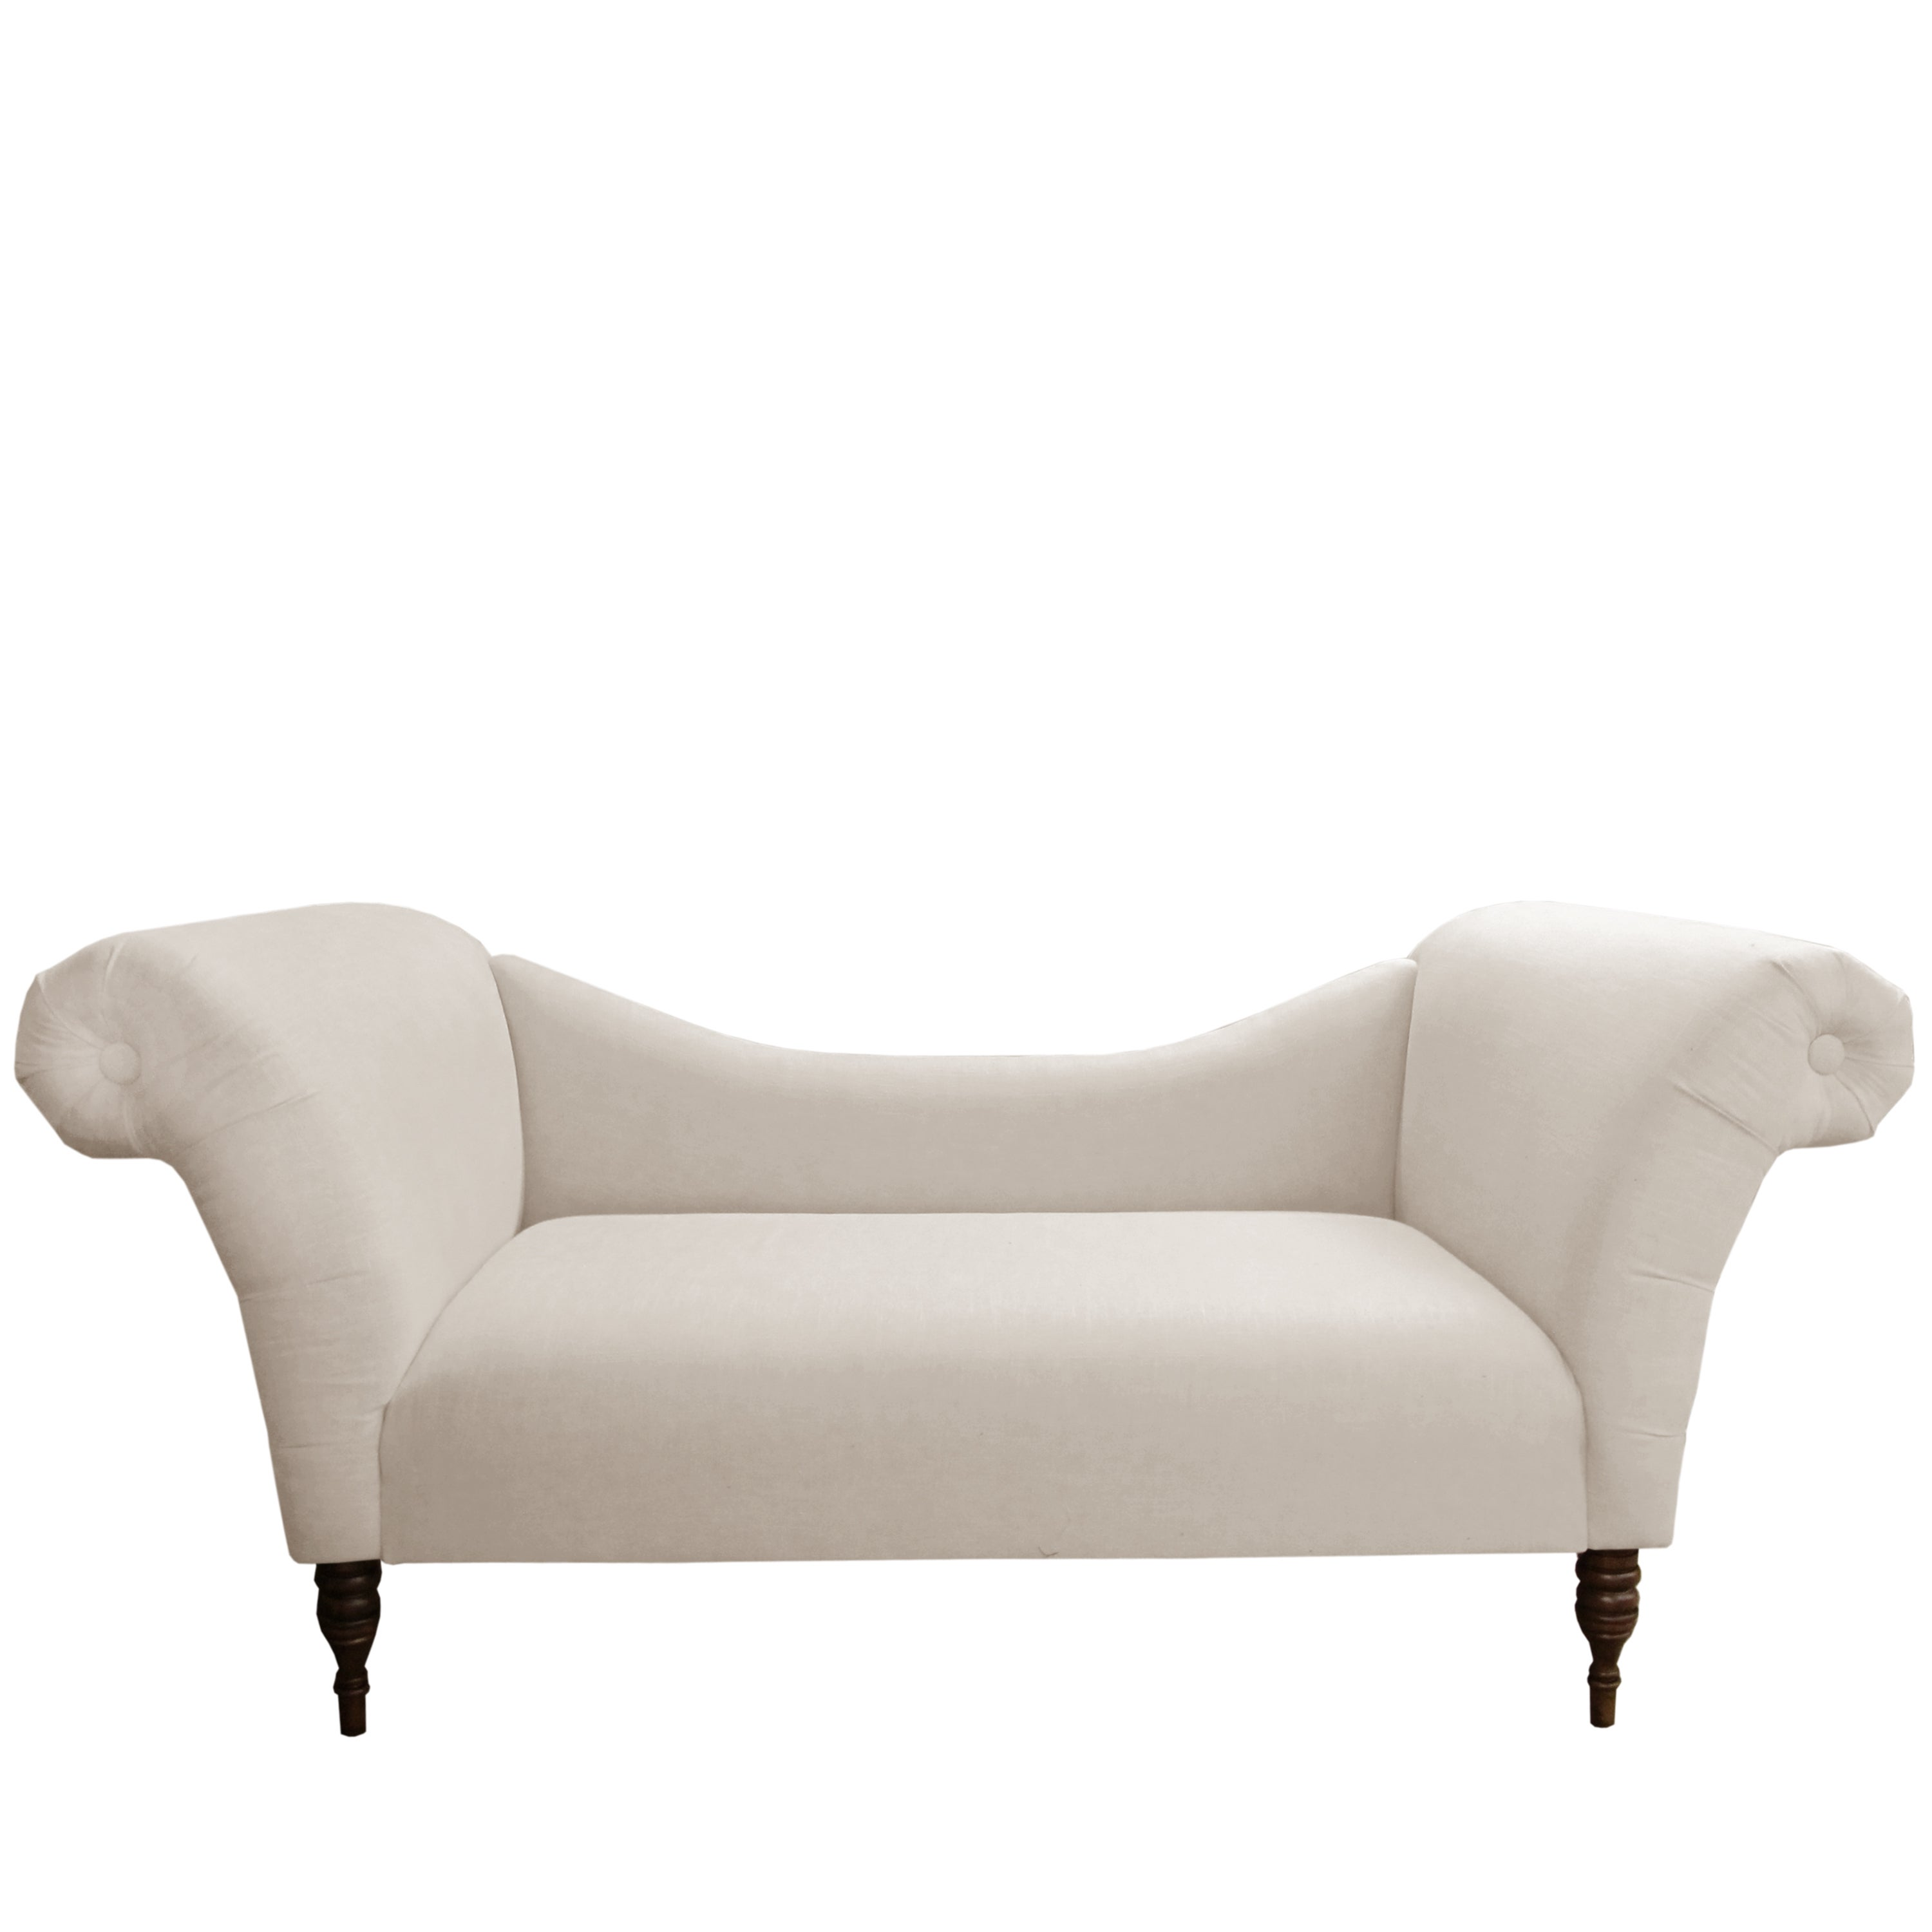 model skyline ideal chaise lounge shapes com